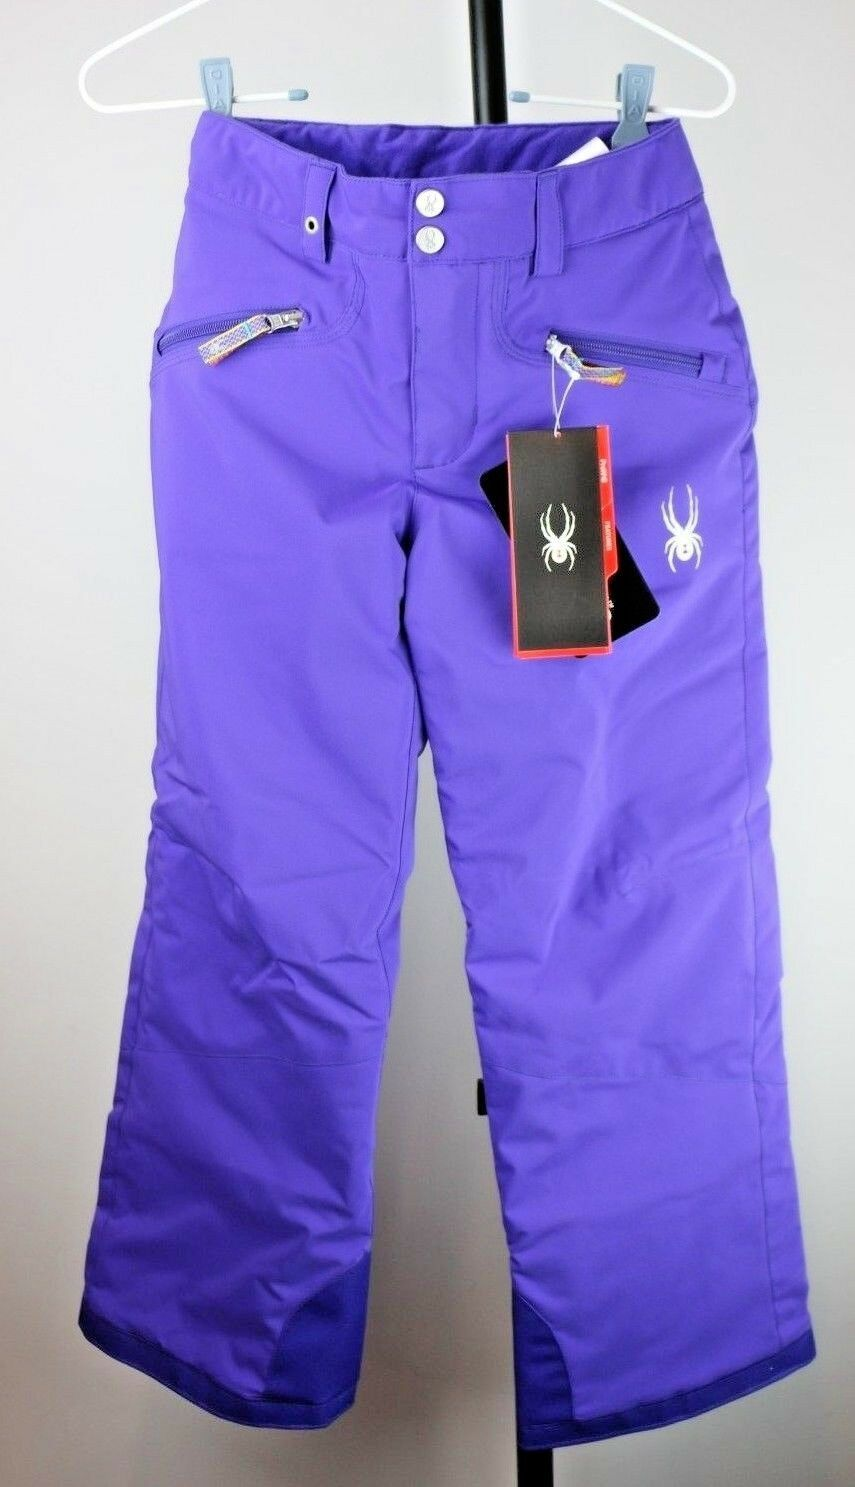 Spyder Girl's Vixen Tailored Snowboard Insulated Snow Ski Pixie Pants Kids 10 M